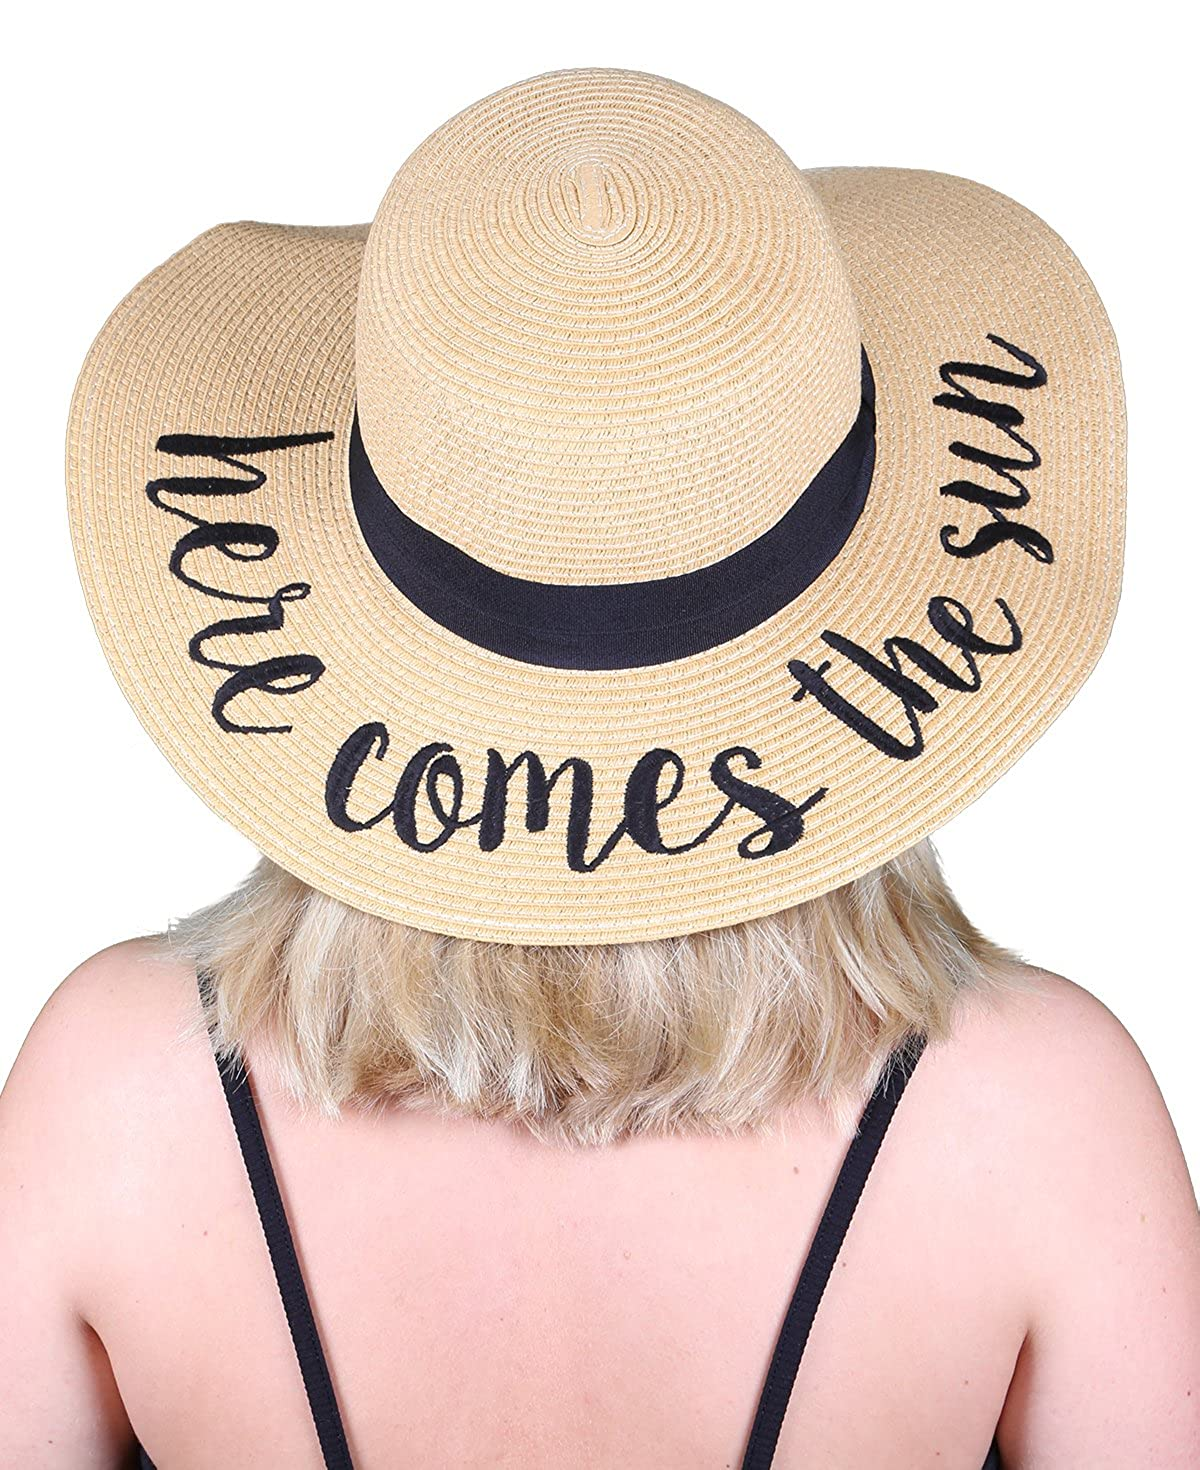 H2017aov Embroidered Sun Hat  Always On Vacay At Amazon Women's Clothing  Store: